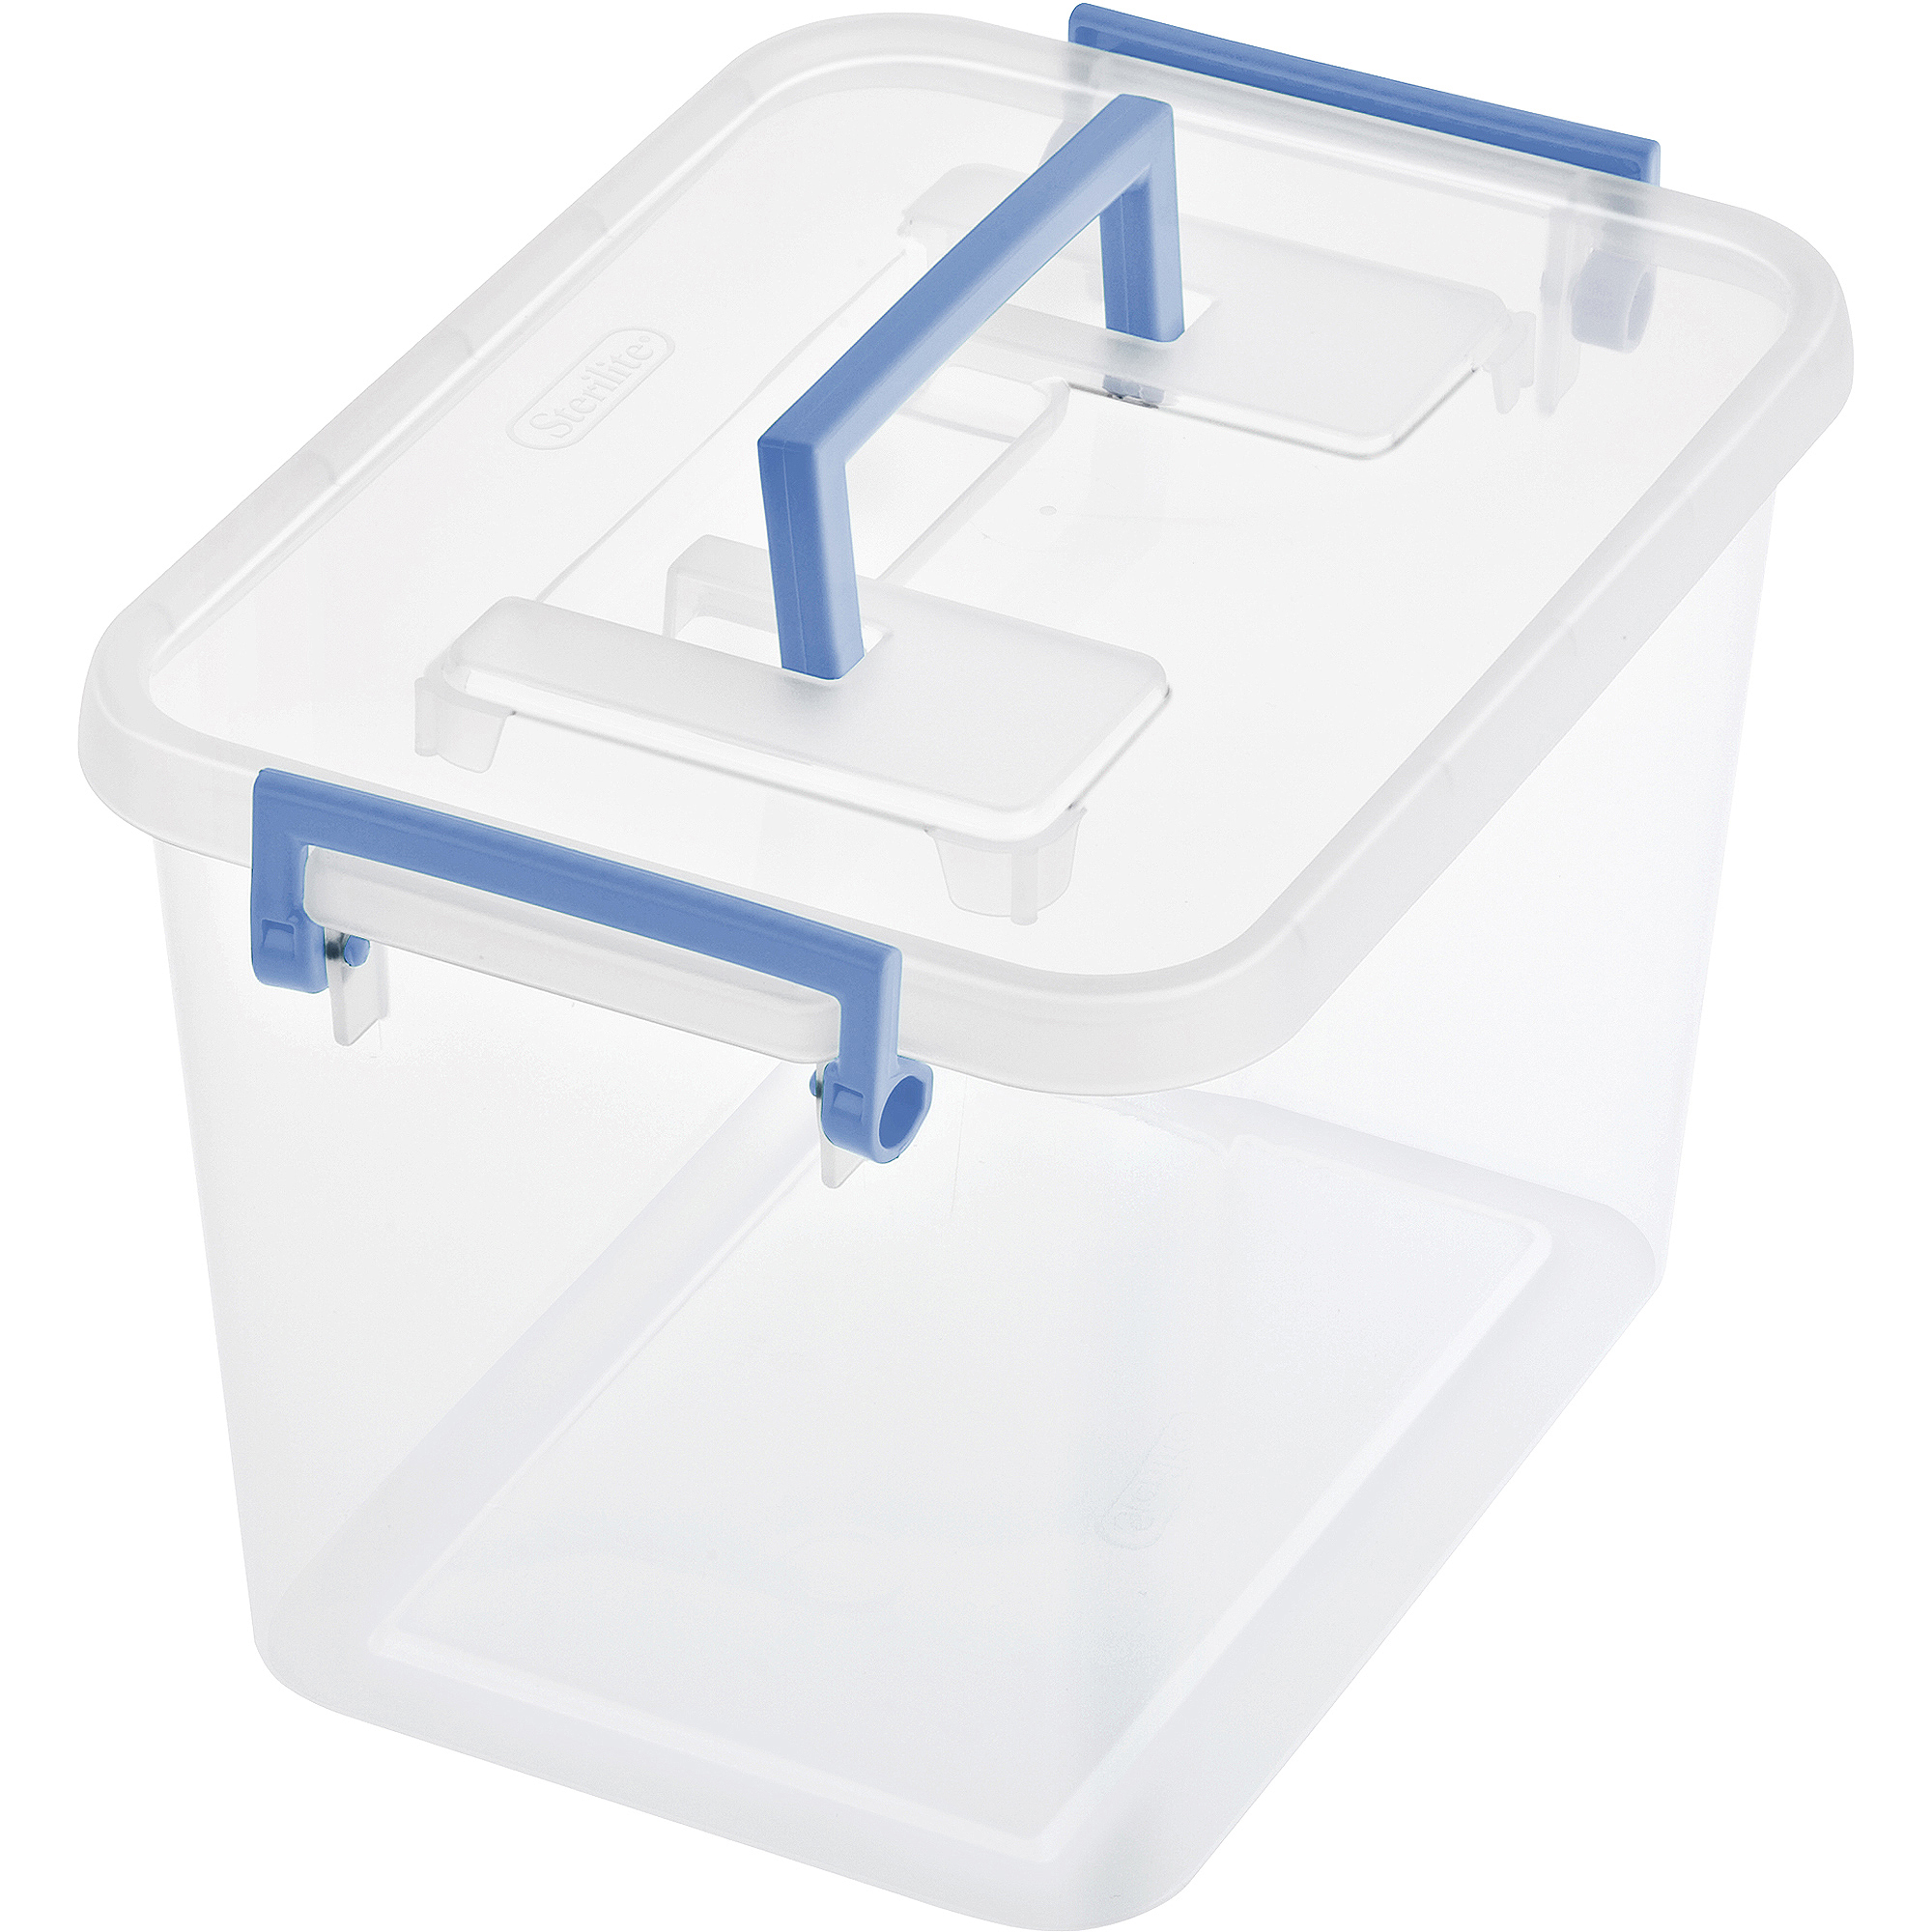 Sterilite 1 8 Gallon 7 2 Quart Modular Latch Storage Box